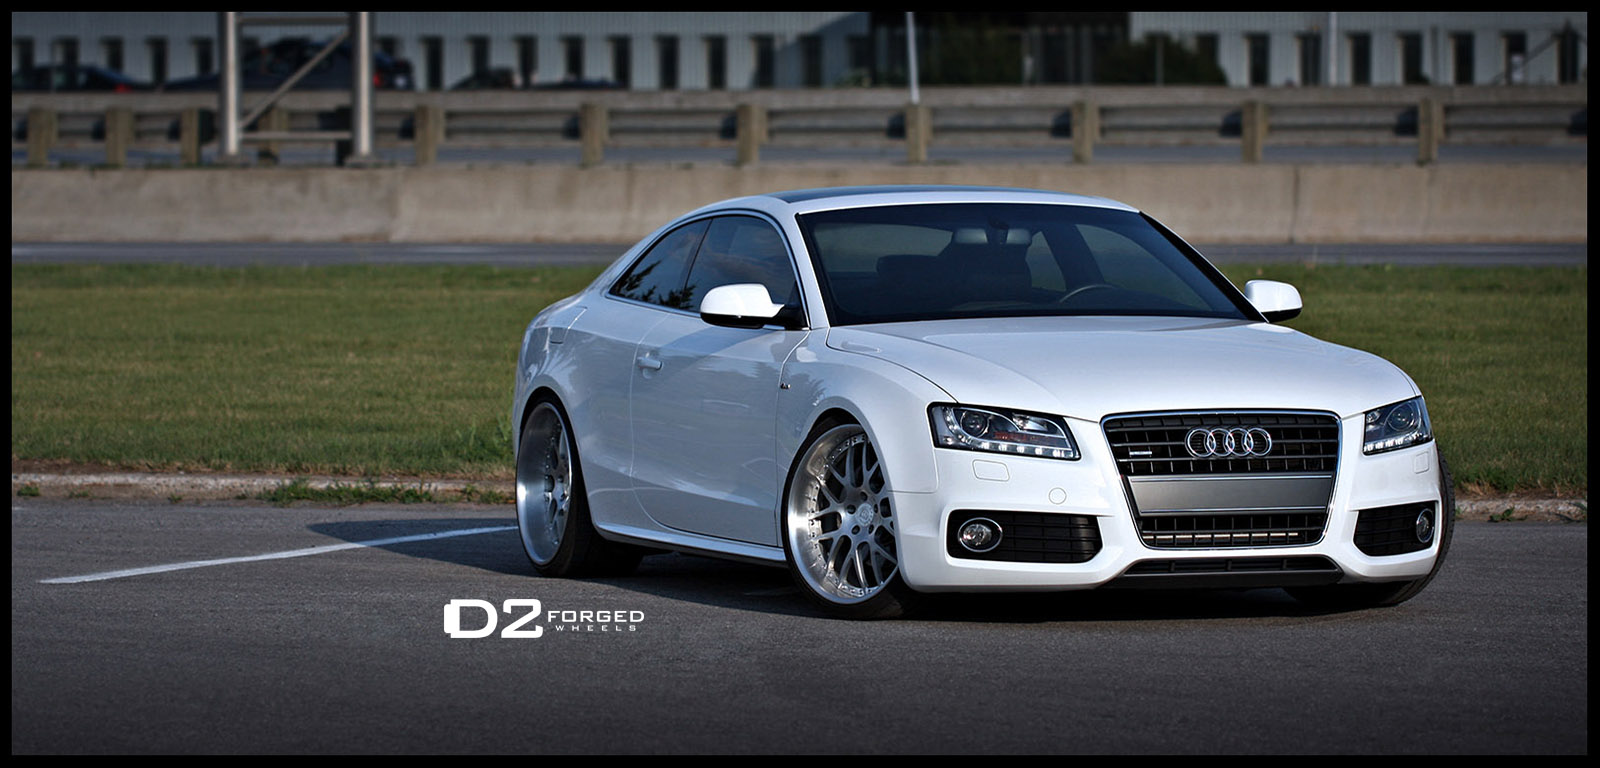 2012 Audi A5 S Line D2forged Vs1 Wheels 08 Audi Tuning Mag